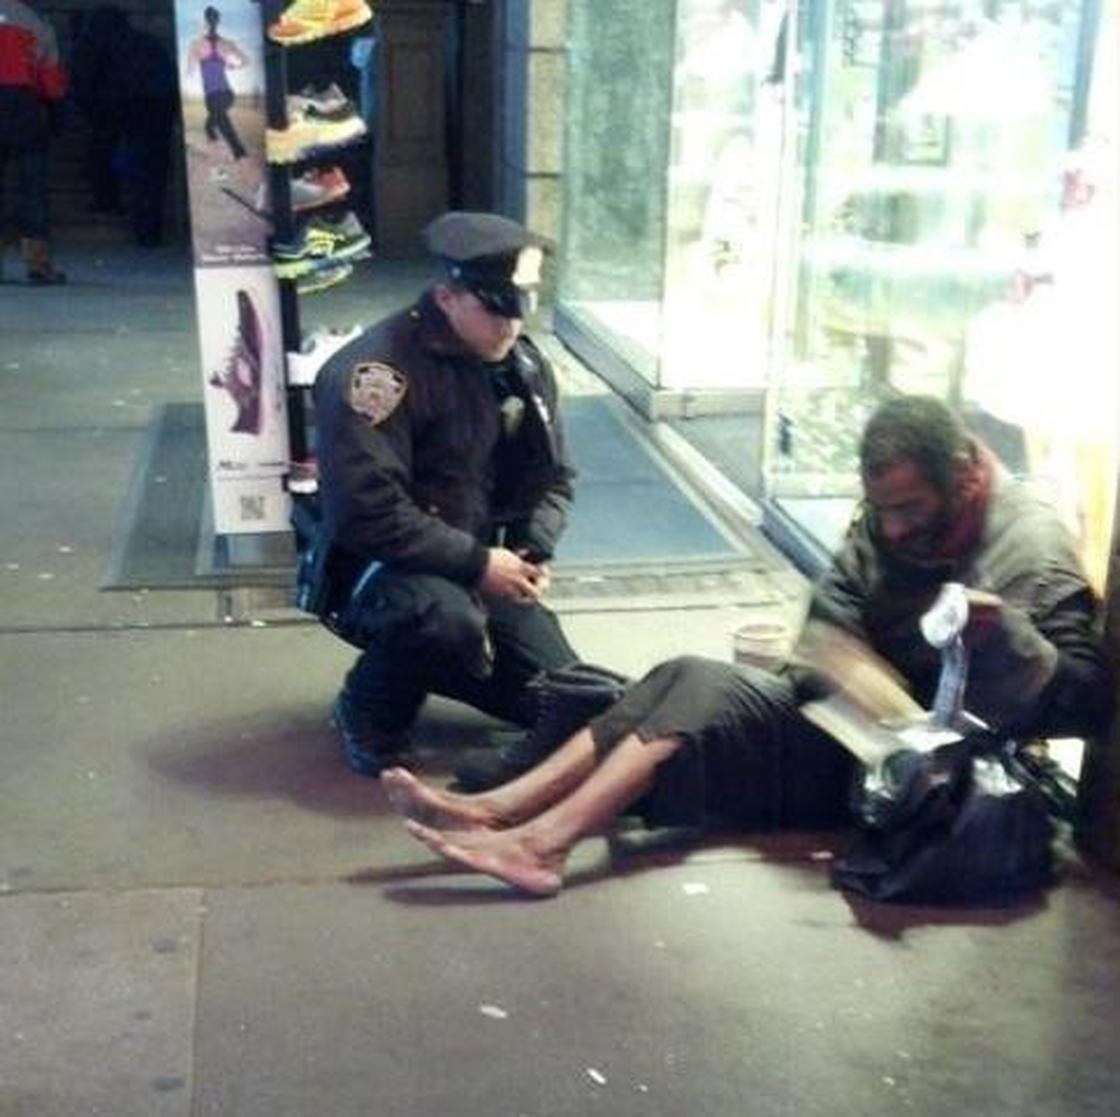 Police officer, Larry DePrimo, gives shoes to Jeffrey Hillman (source: NPR / NYPD)